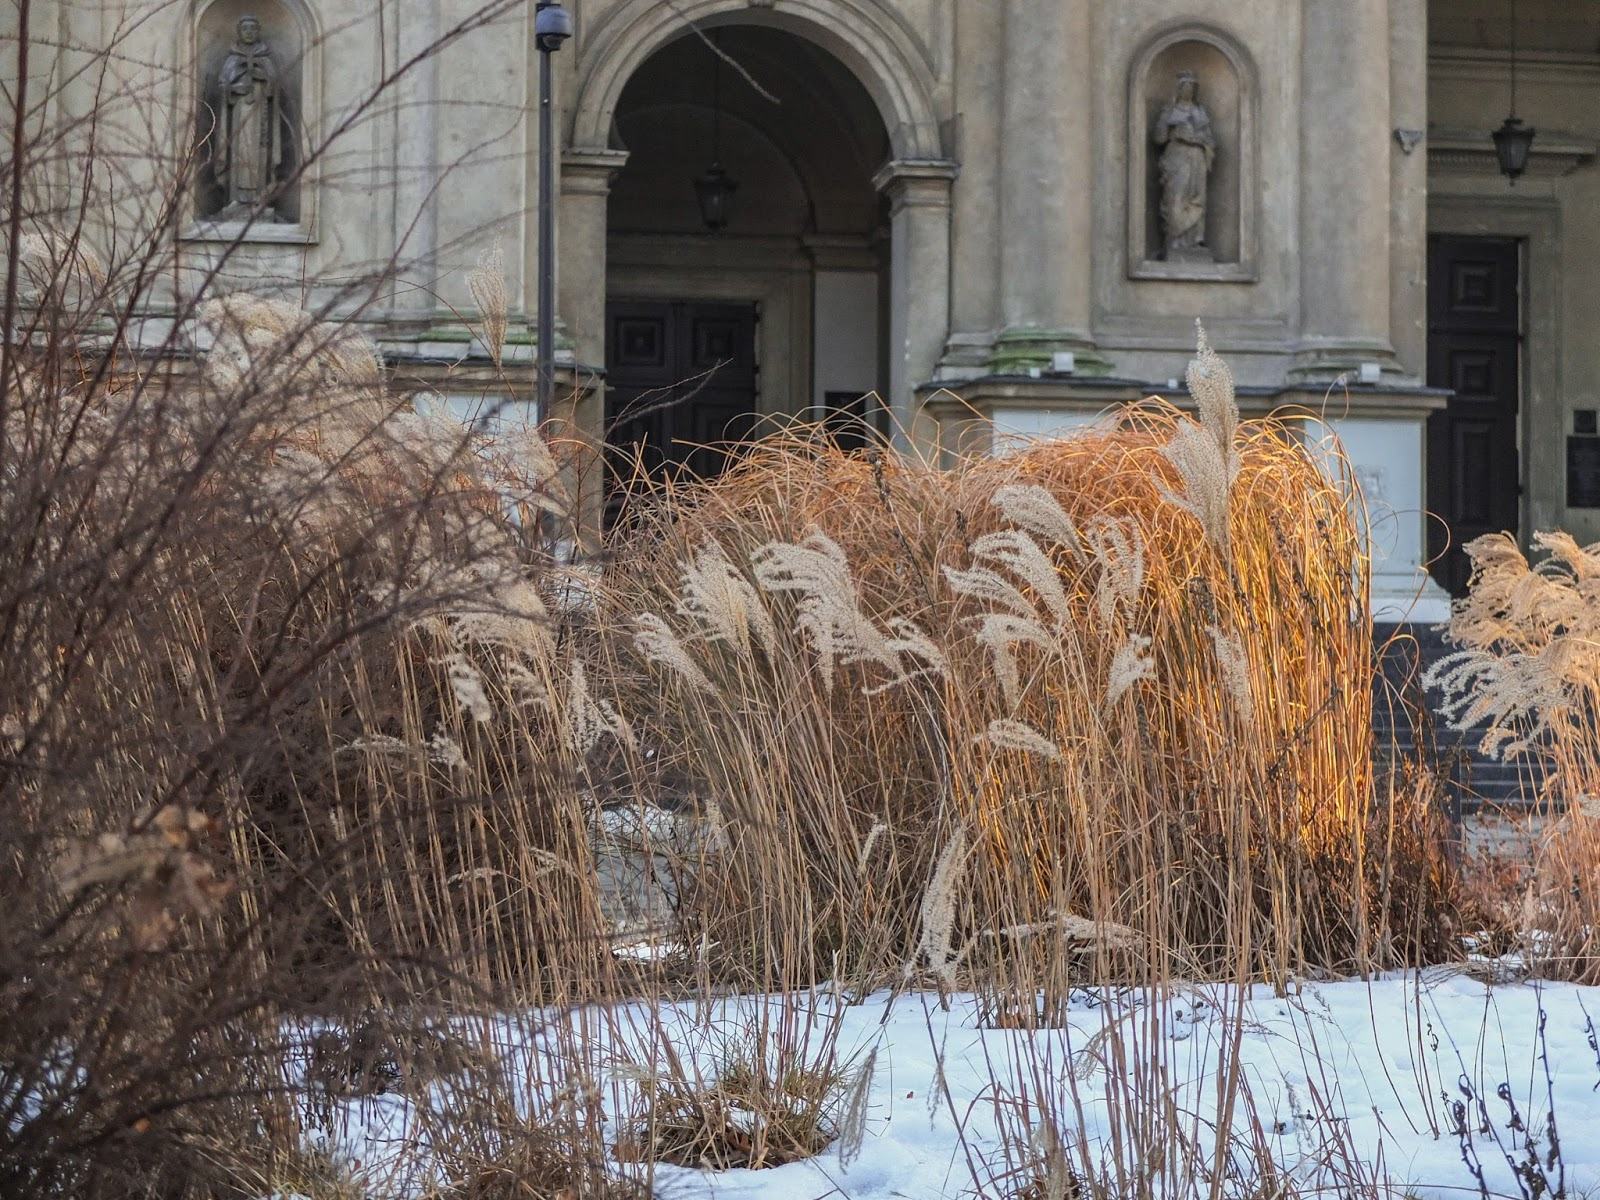 Tall grasses at sunset outside a church in Warsaw.